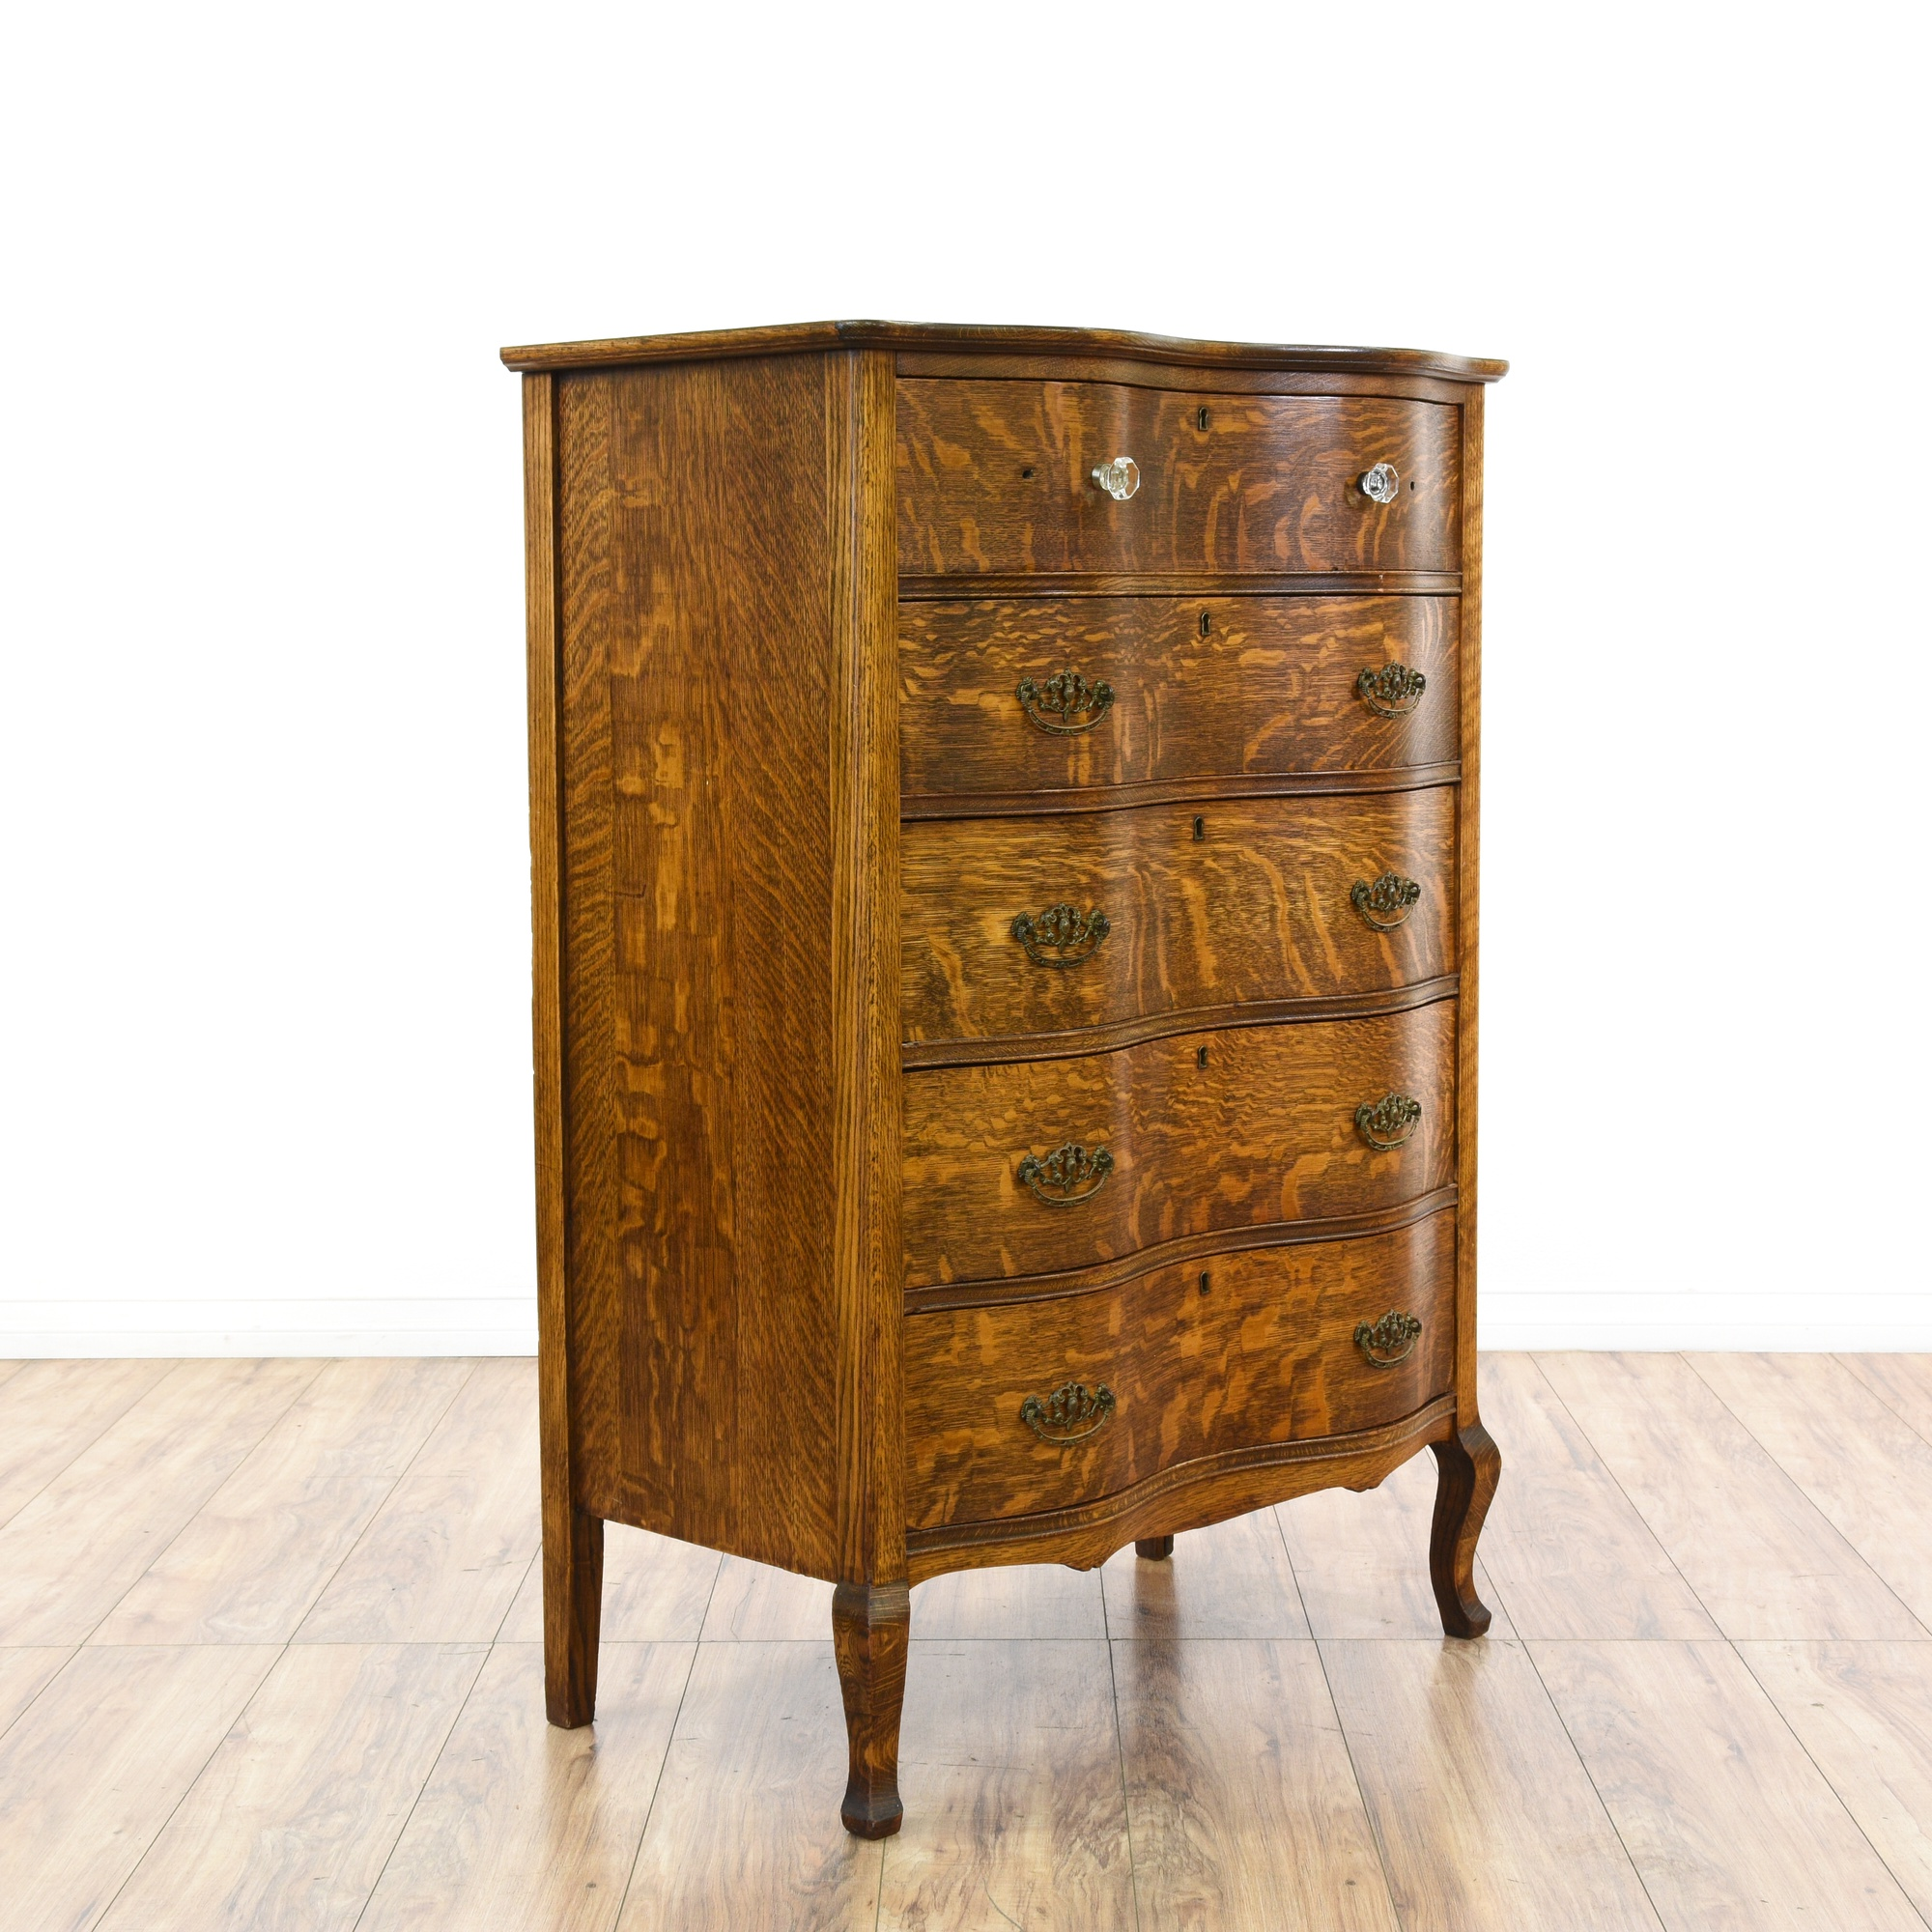 Sell Antique Furniture San Diego